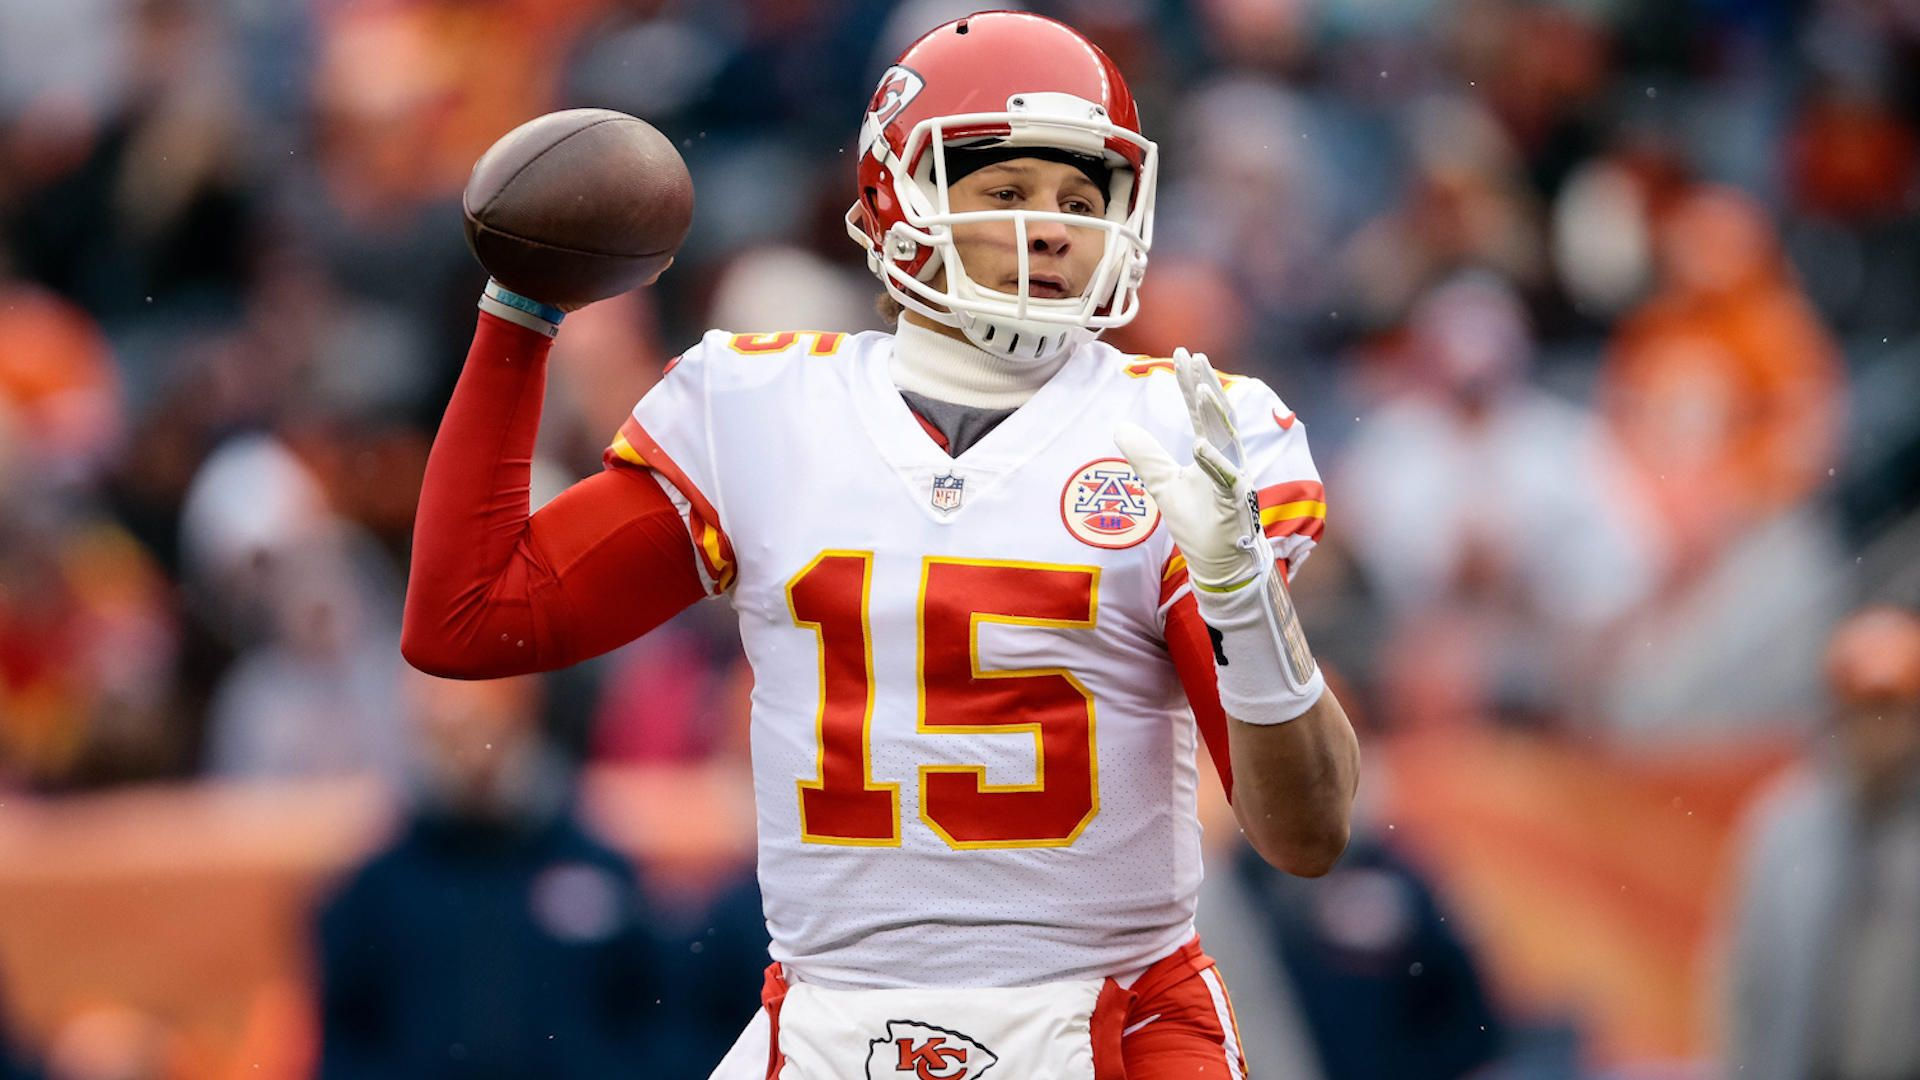 1920x1080 Why Patrick Mahomes could be the next great big-arm QB - CBSSports.com